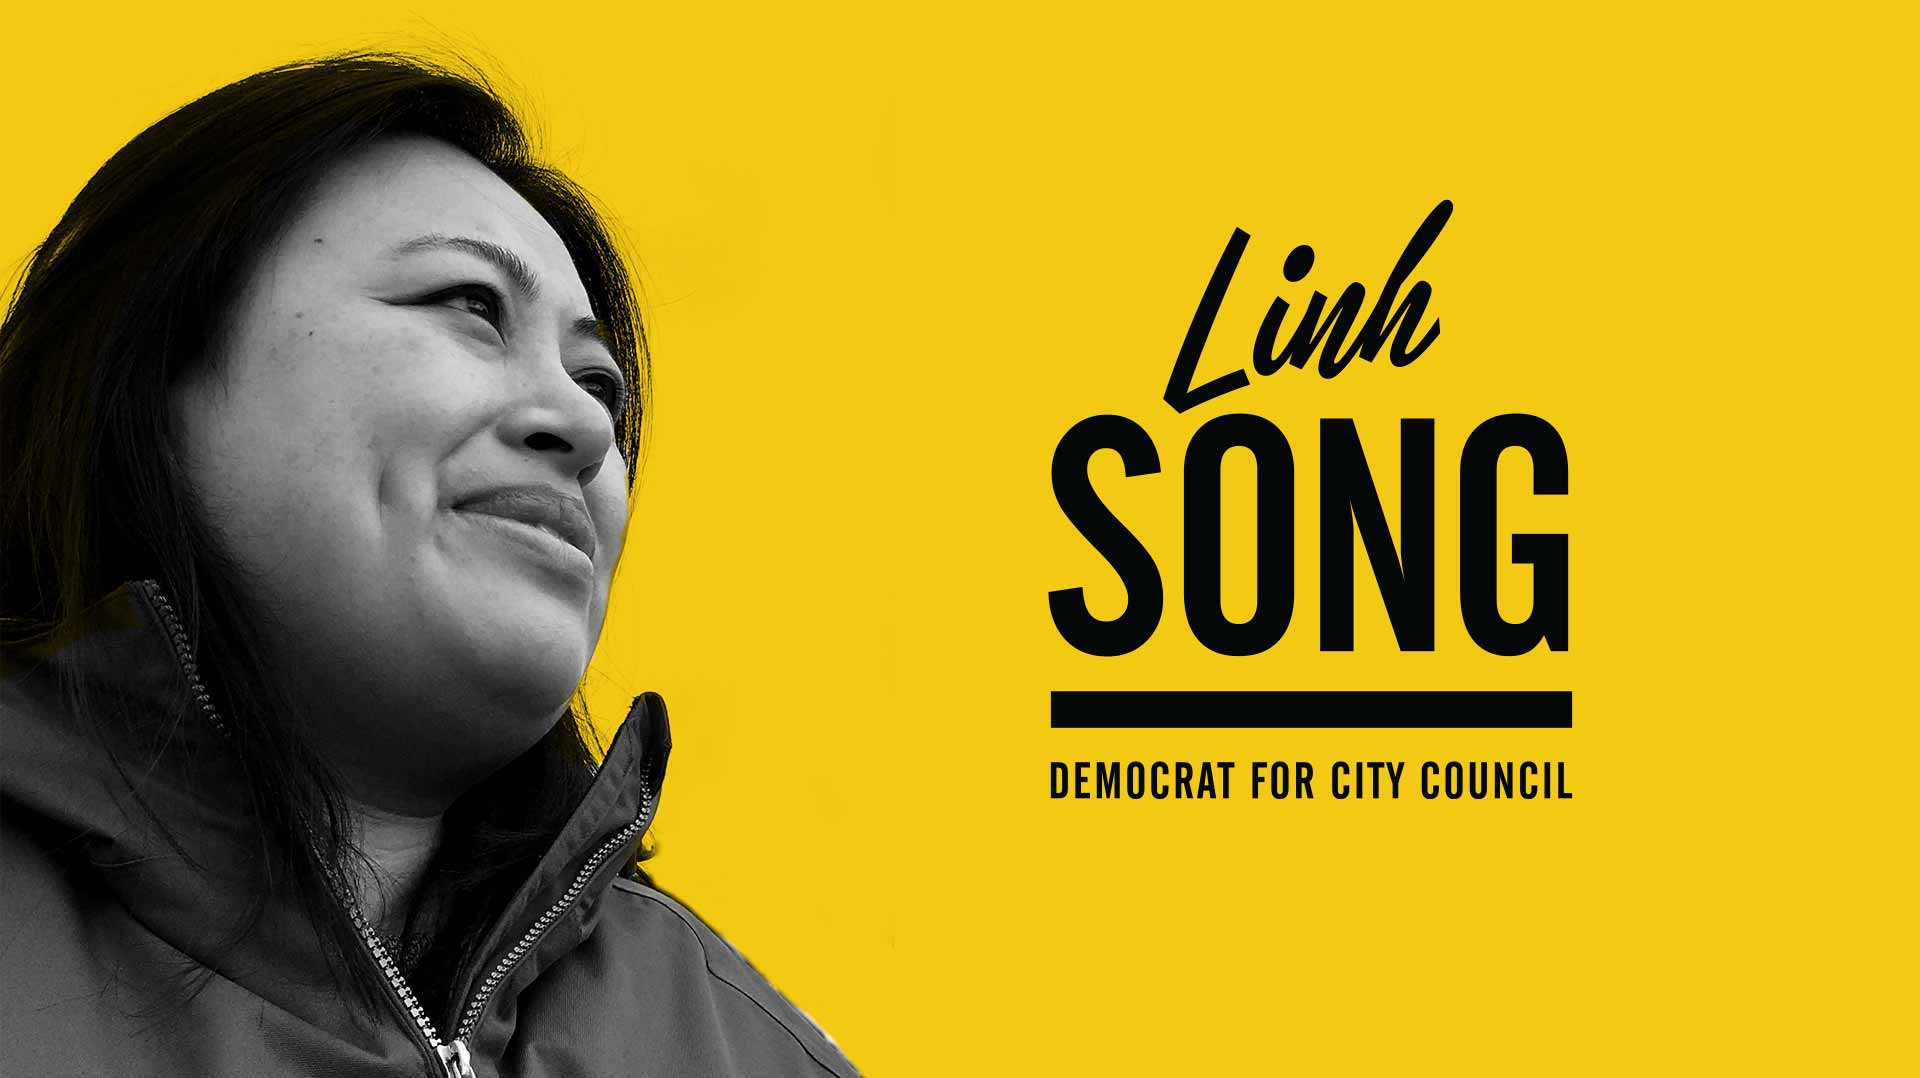 Linh Song for Ann Arbor City Council